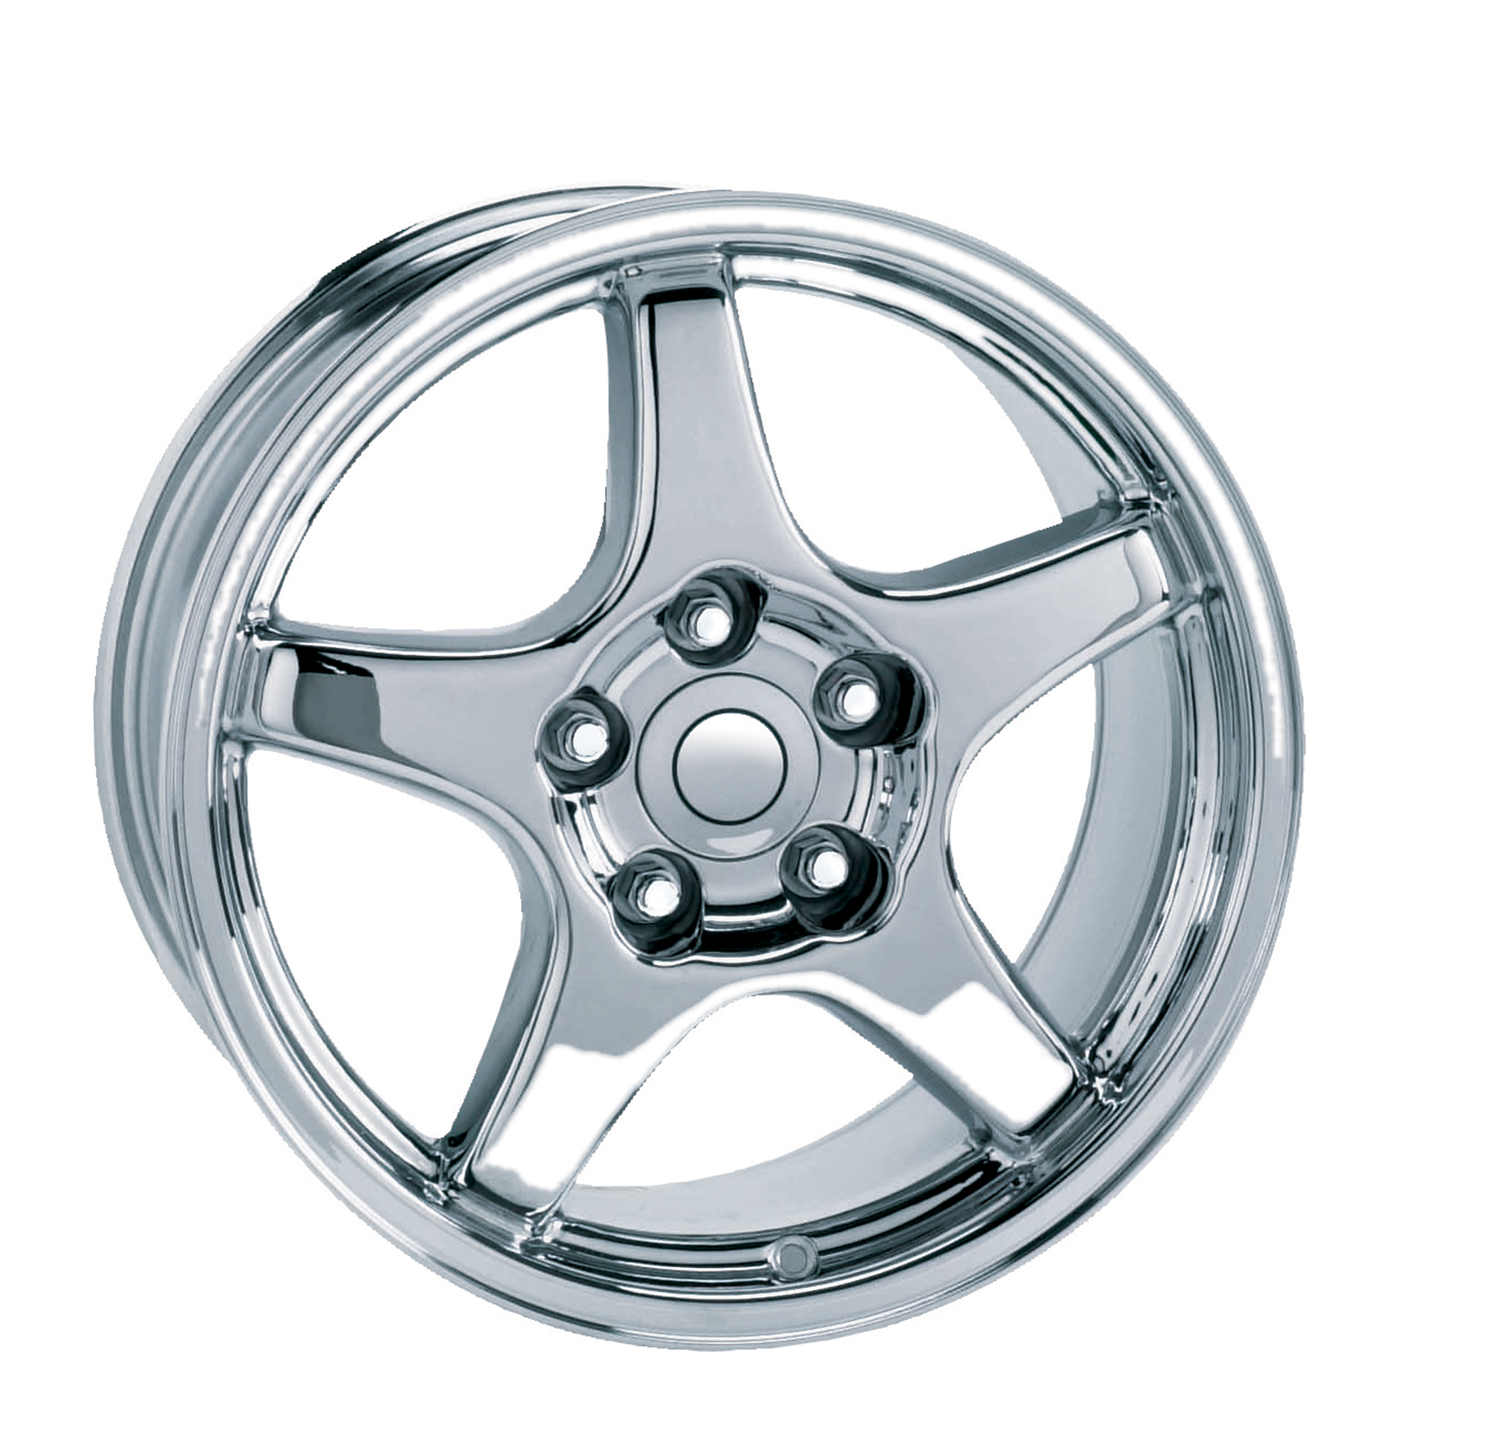 Chevrolet Corvette 1984-1996 17x9.5 5x4.75 +54 C4 Zr1 Style Wheel - Chrome With Cap